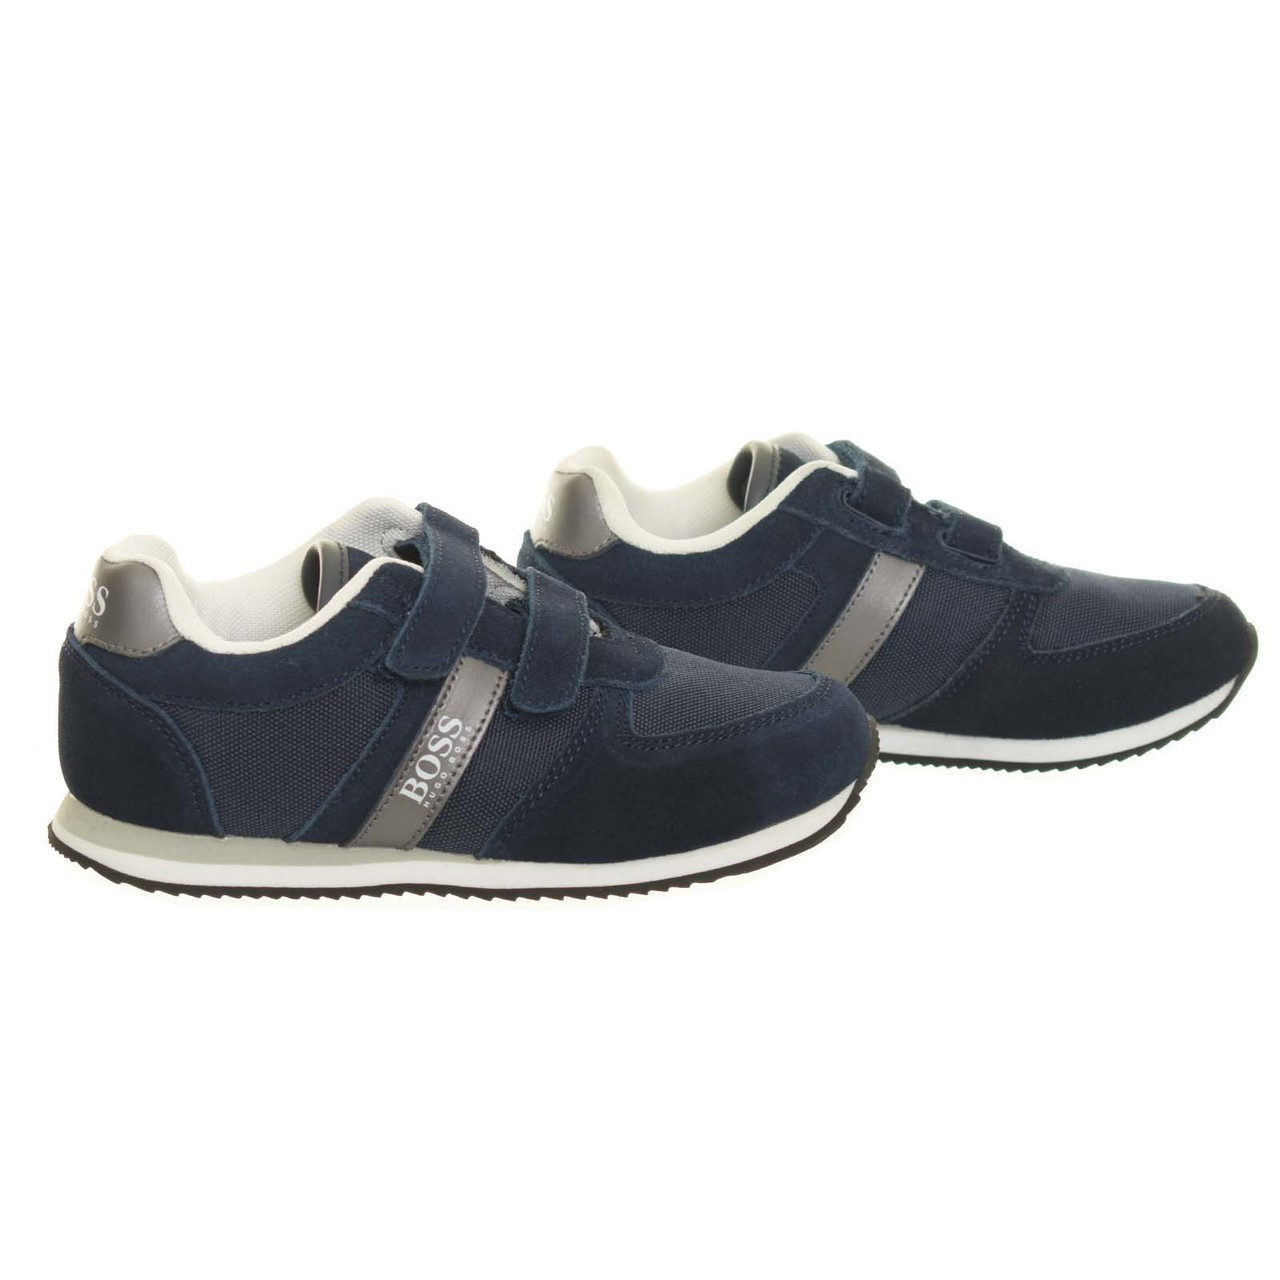 Hugo Boss Boys Trainer Navy Shoe - Diffusion Designer LTD 63e17213e6cb